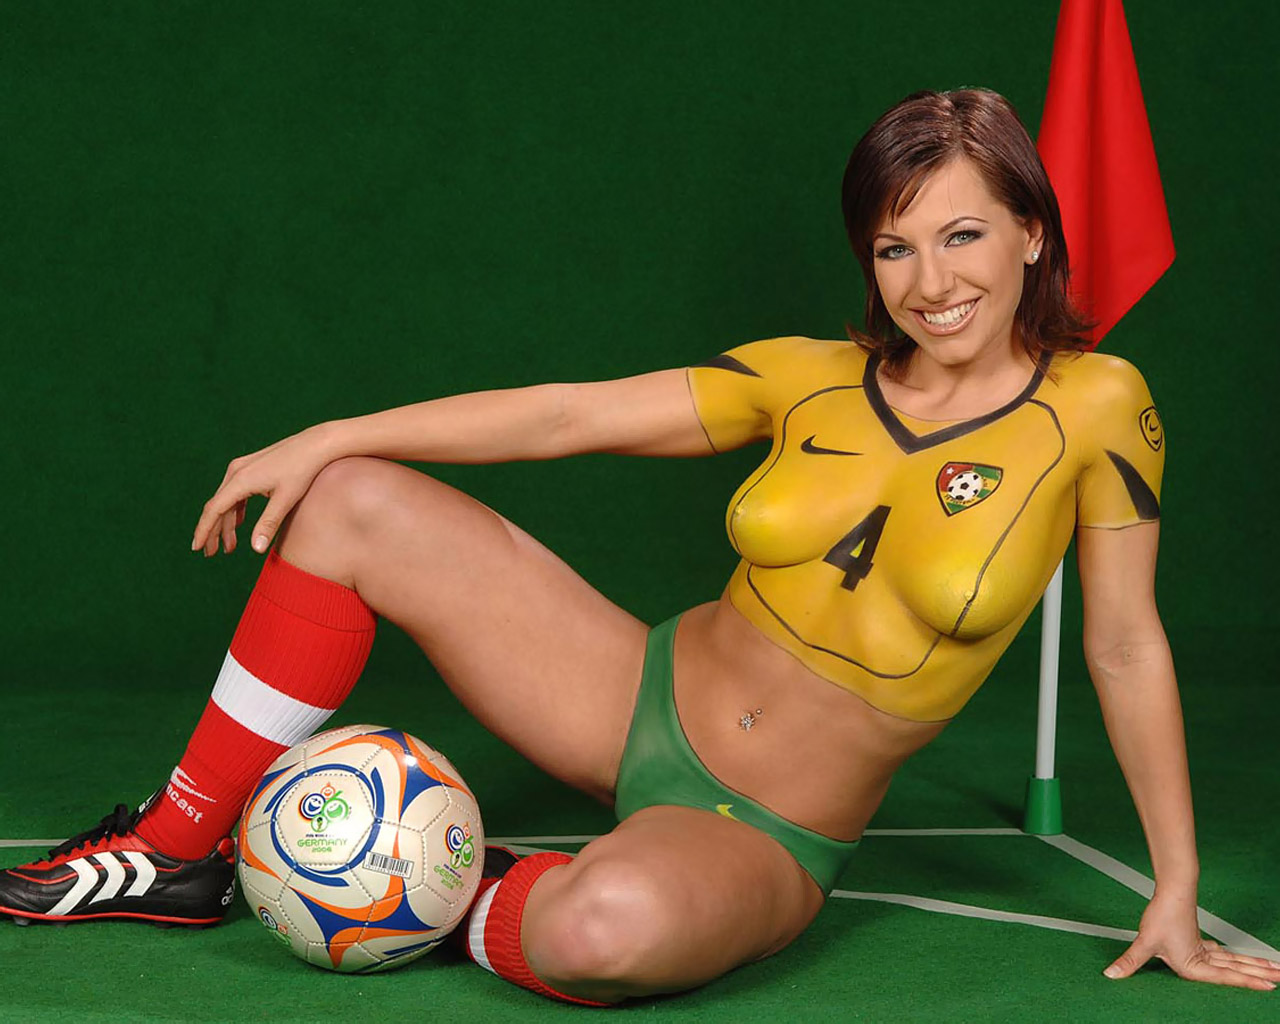 World Cup 2006 - Body Painting Jersey 1280x1024 NO.29 Desktop ...